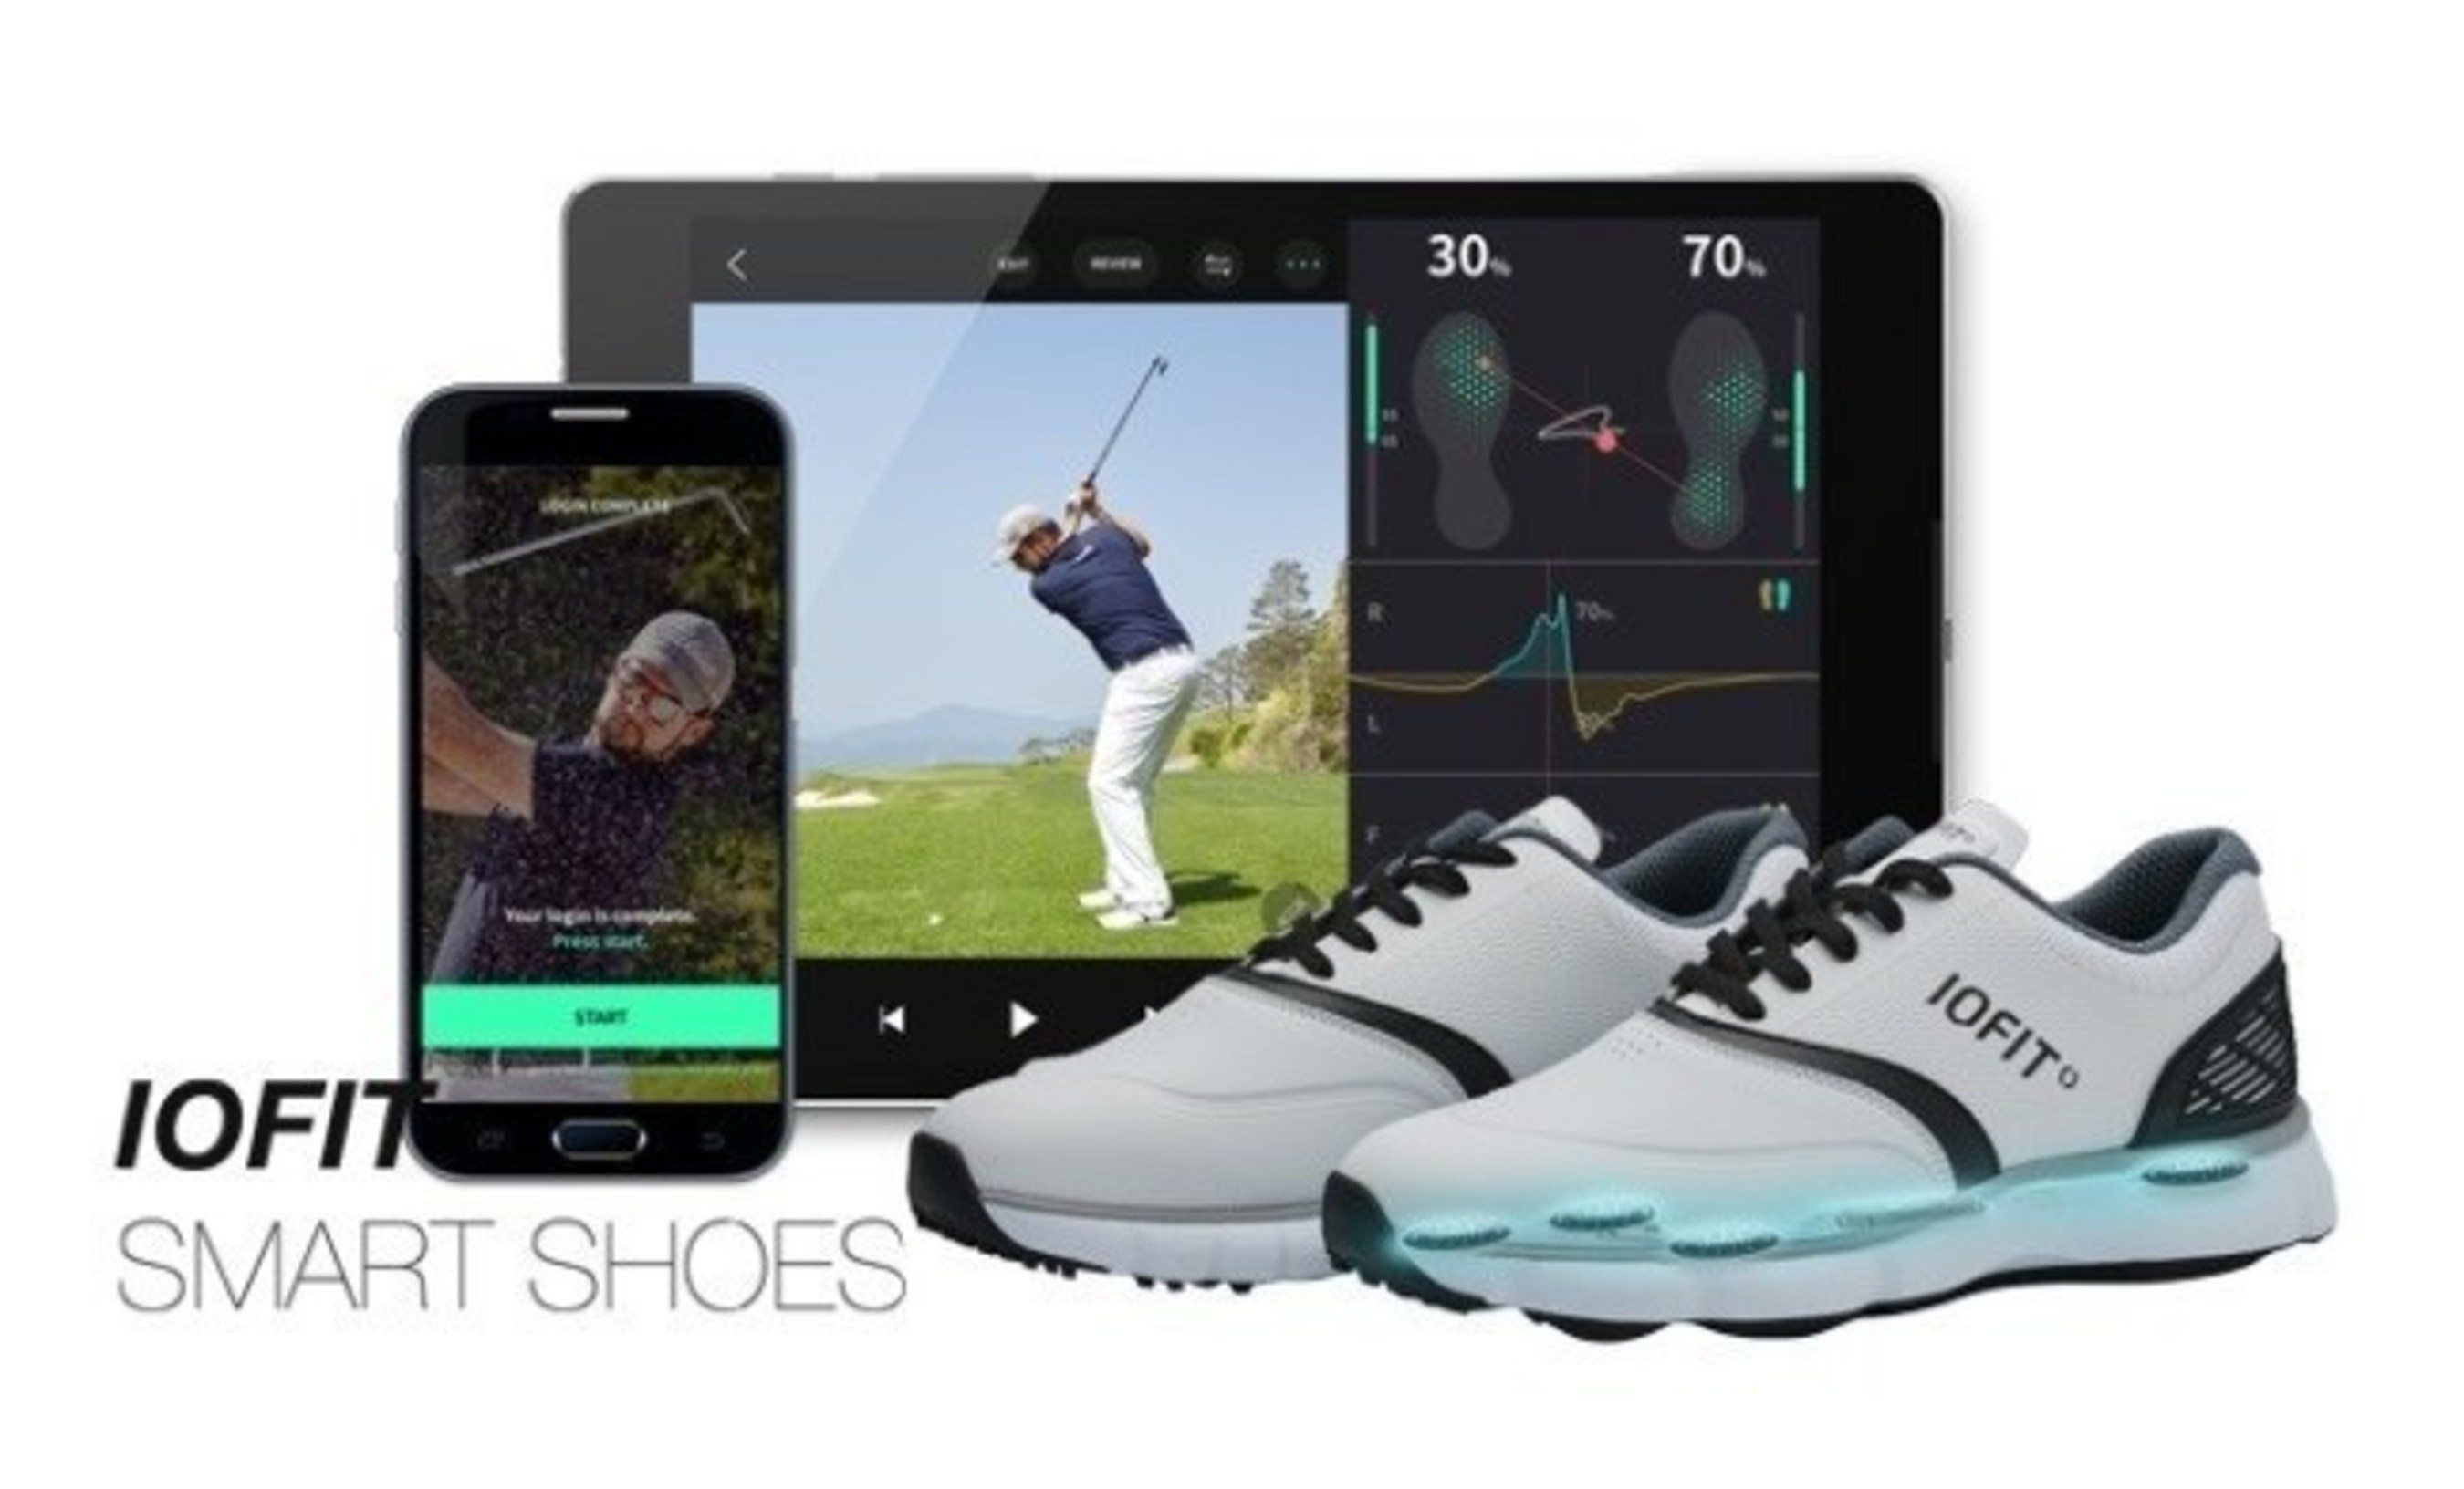 Salted Venture's independently developed smart golf shoes, Iofit, will be receiving the Innovation Award at CES 2017, the world's largest electronics expo